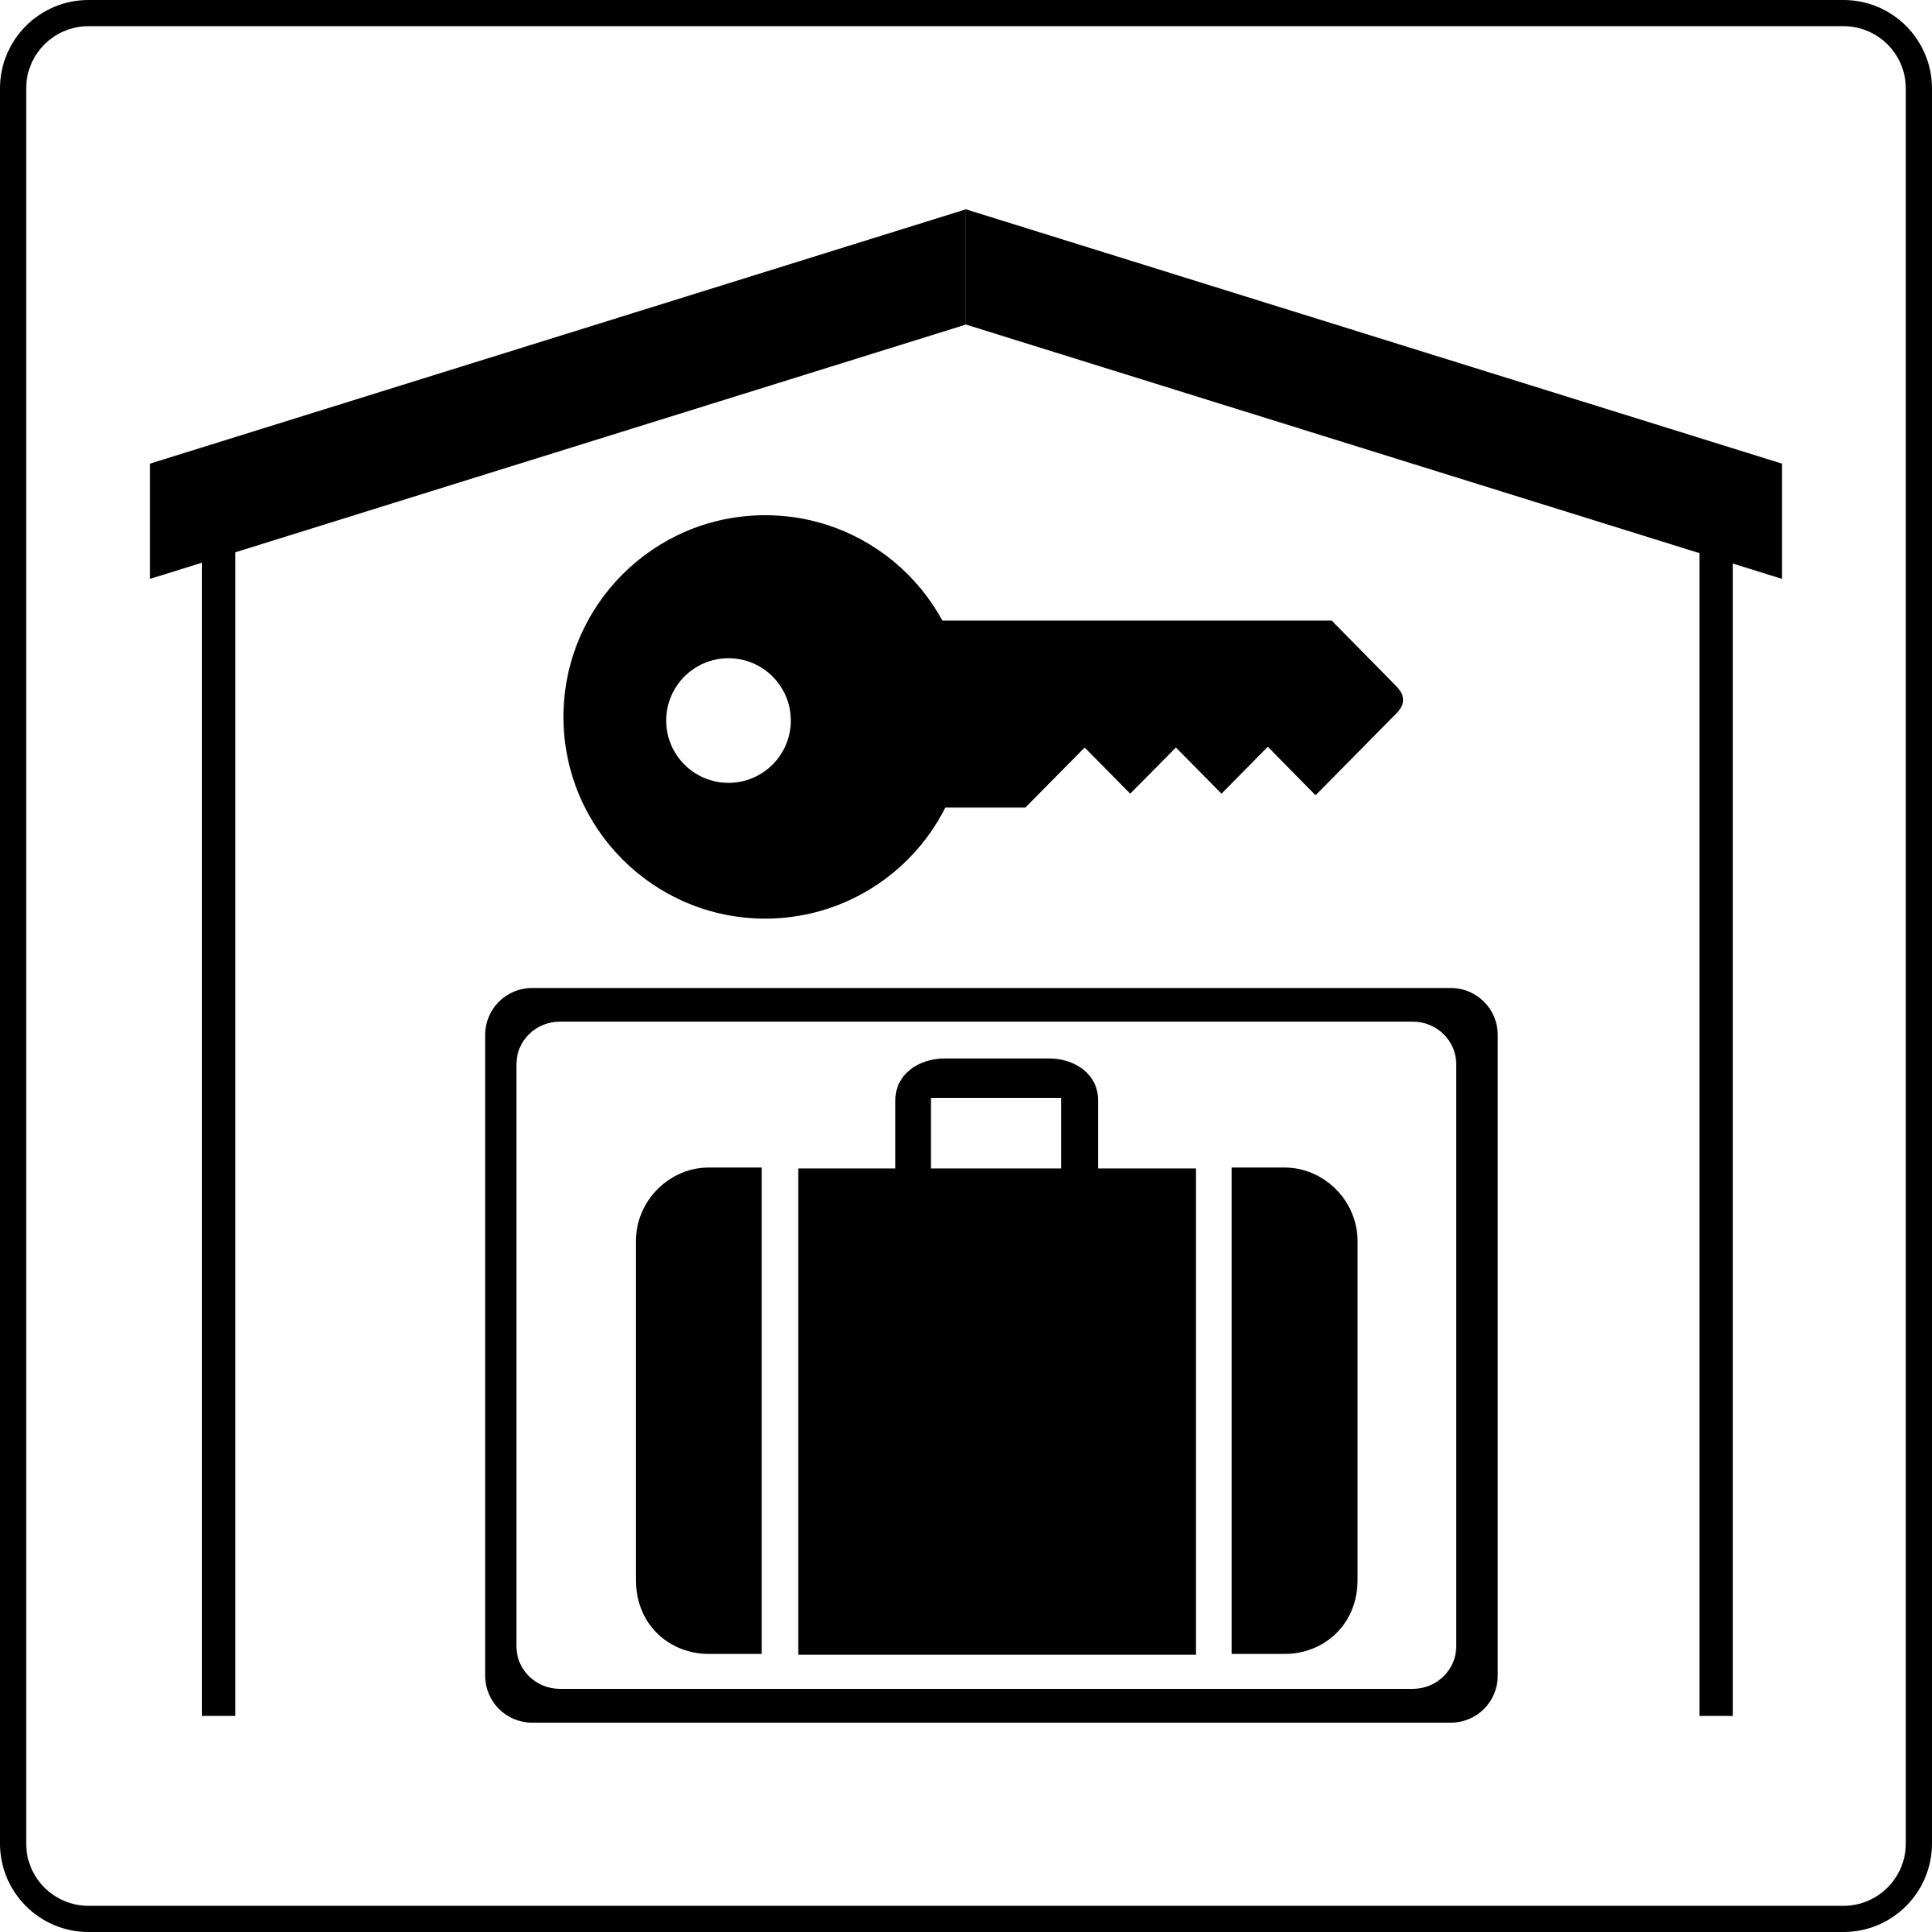 Hotel Icon Has Secure Storage In Room Icons PNG - Free PNG and Icons ...